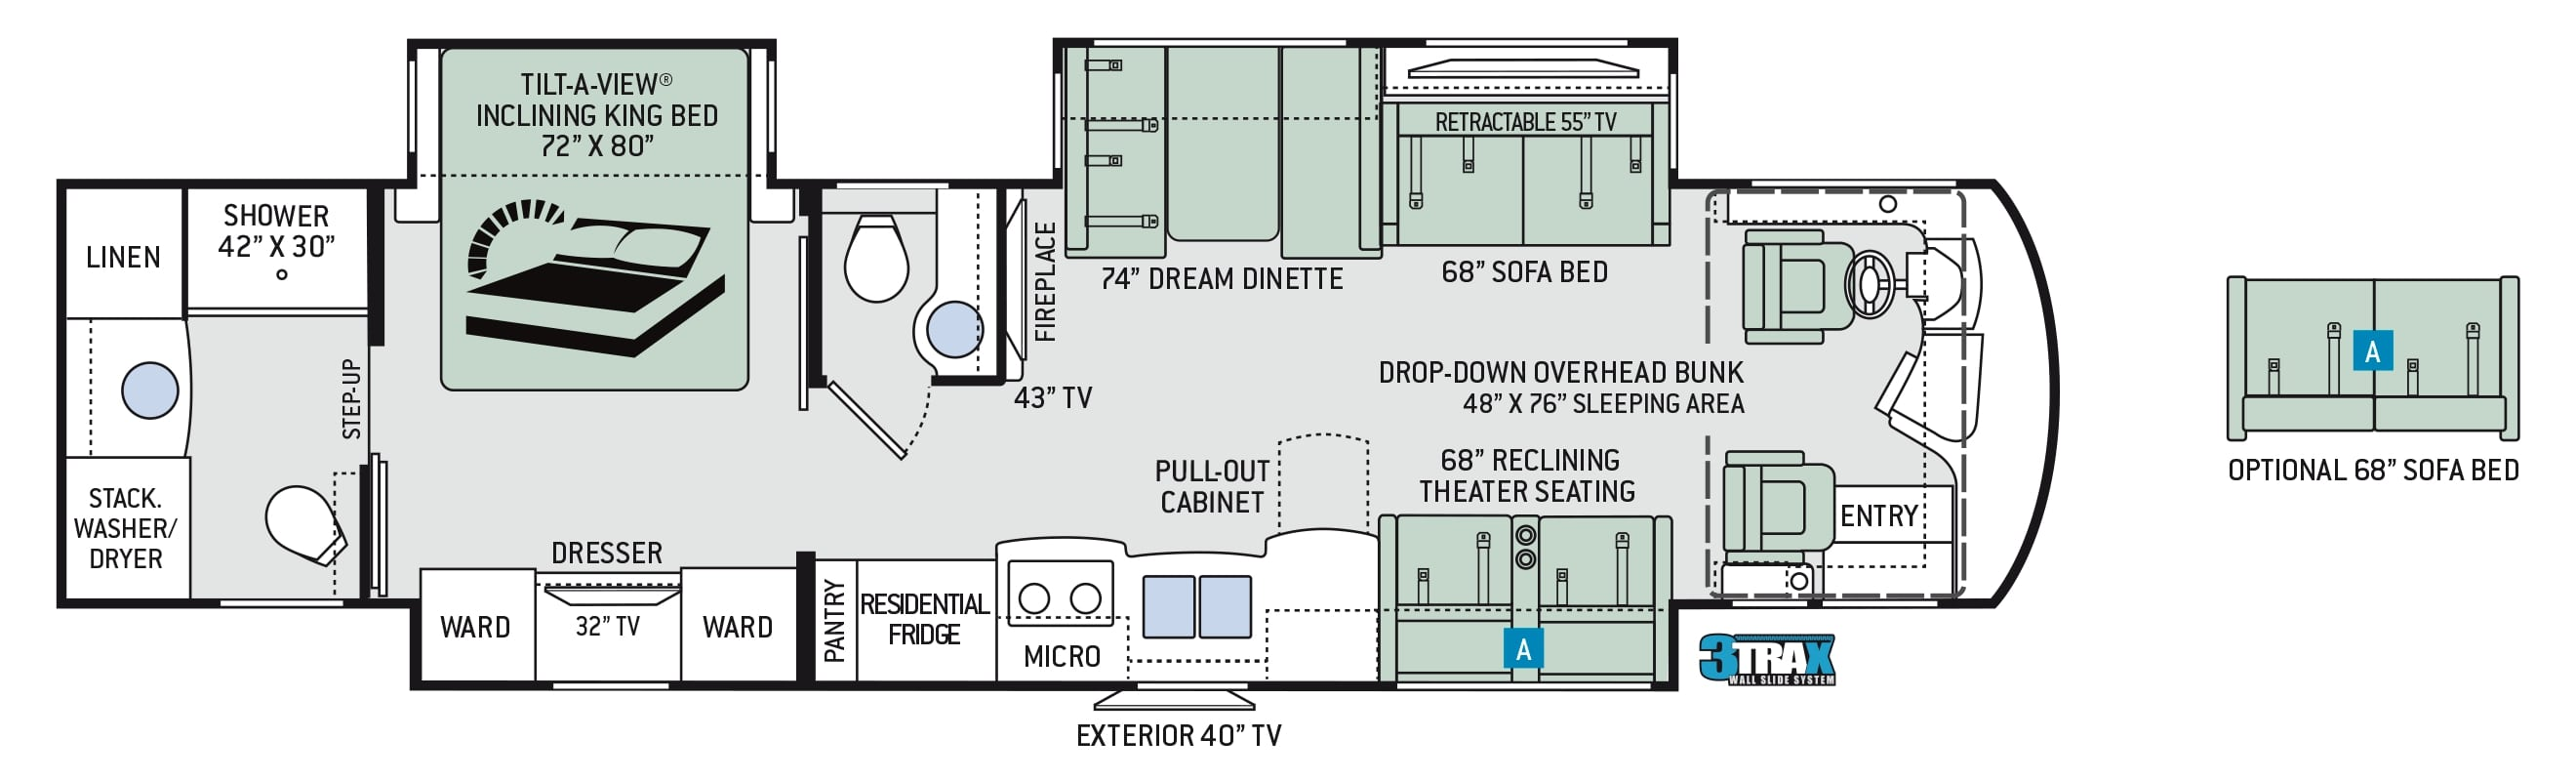 2019 Thor Aria 3901 Floor Plan